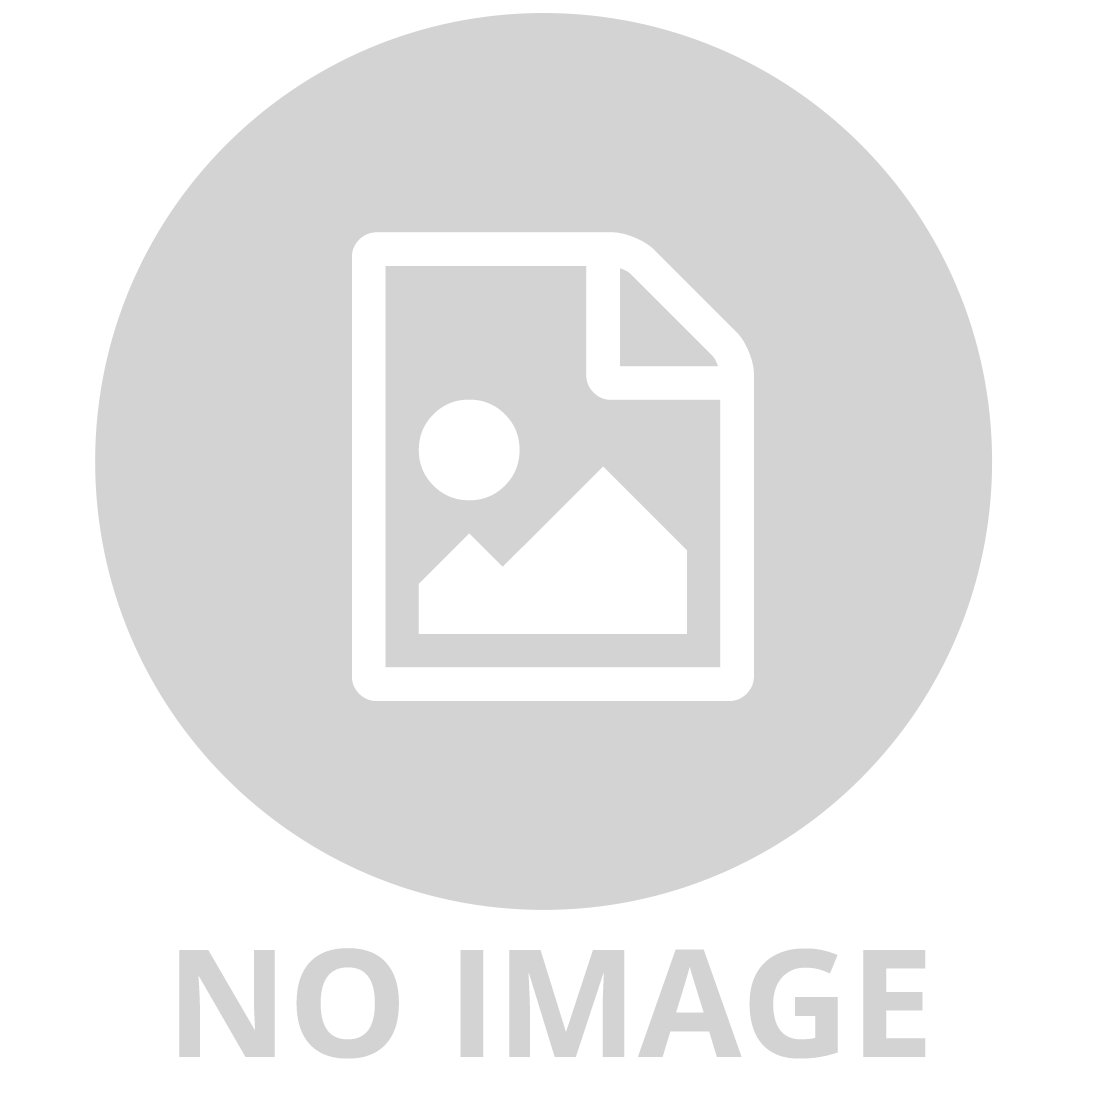 DISNEY PIXAR CARS - BUCK BEARINGLY